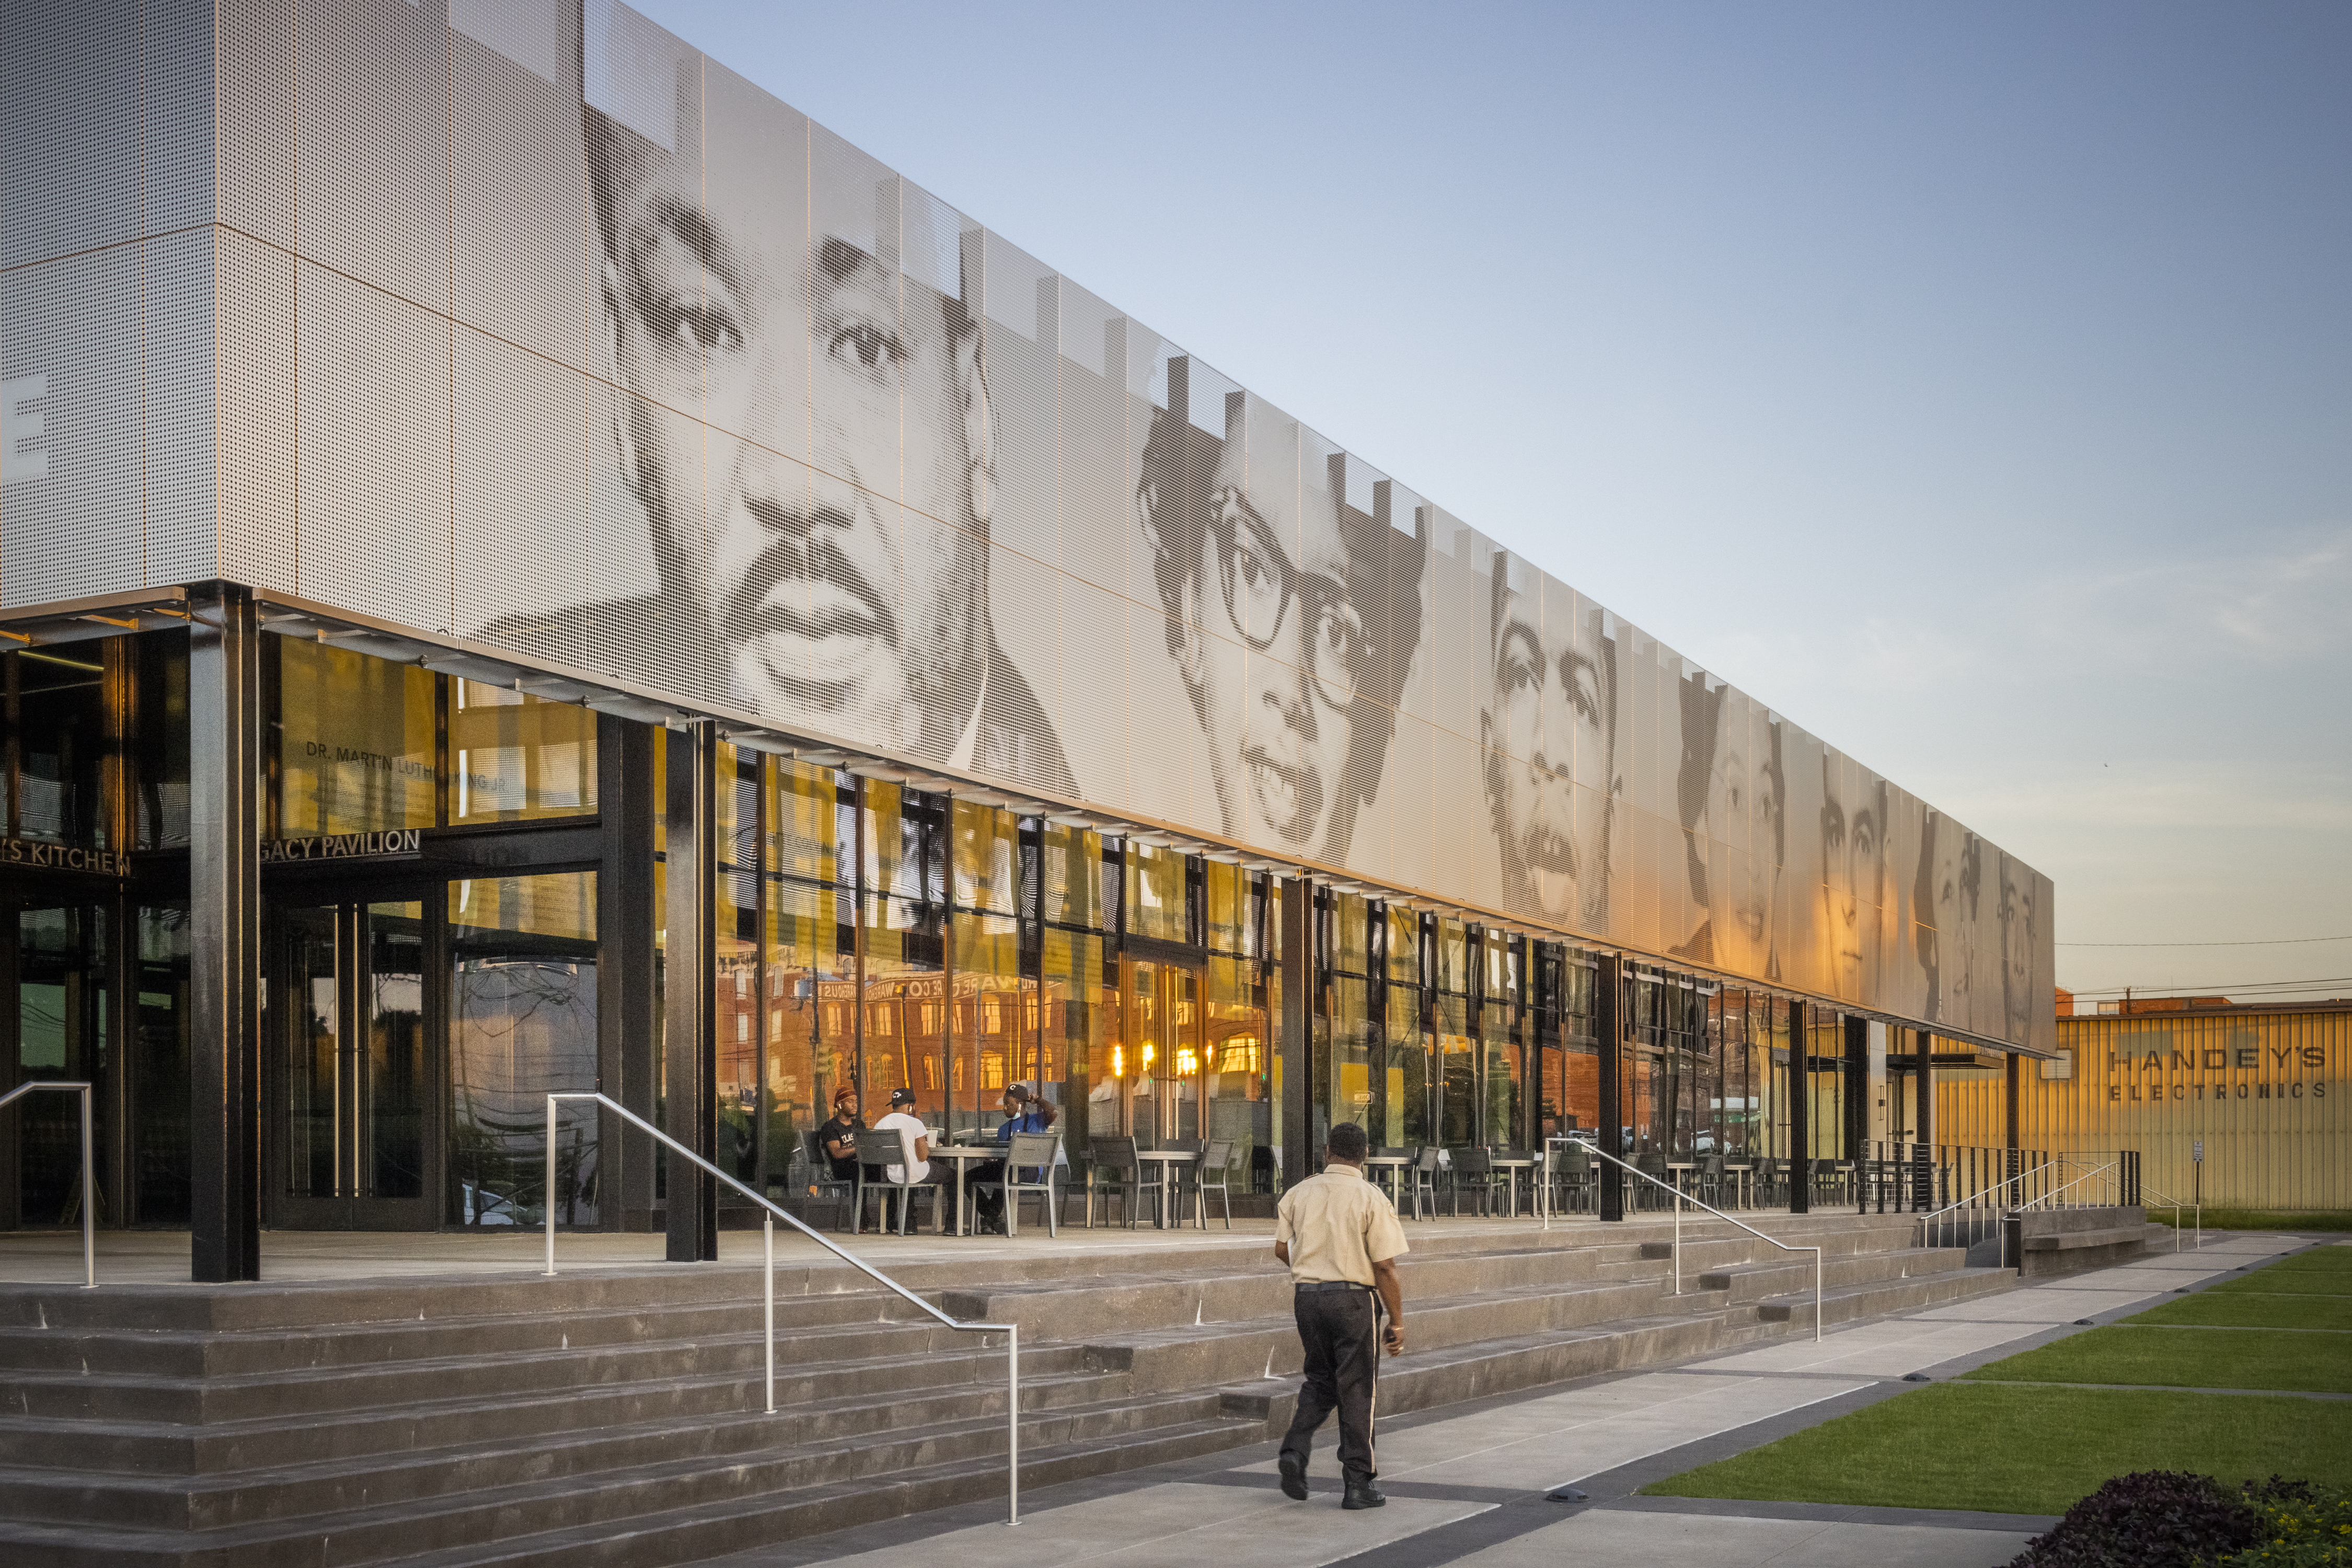 Zahner ImageWall was used to create the custom perforated facade that clads the awning of the EJI Legacy Pavilion.